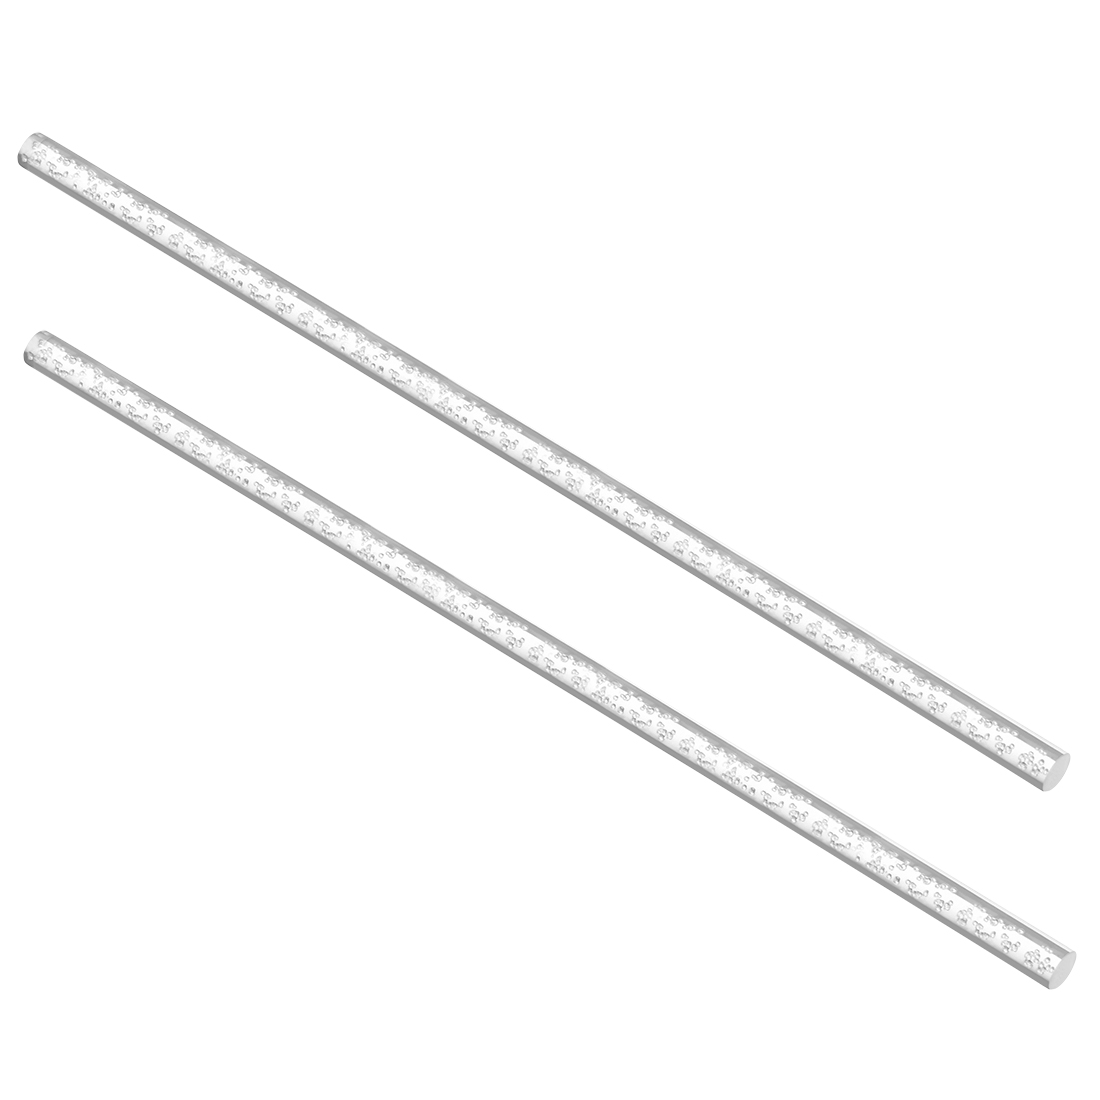 8mm Dia 250mm Long Air Bubble Acrylic Rod PMMA Circular Bar Clear 2pcs